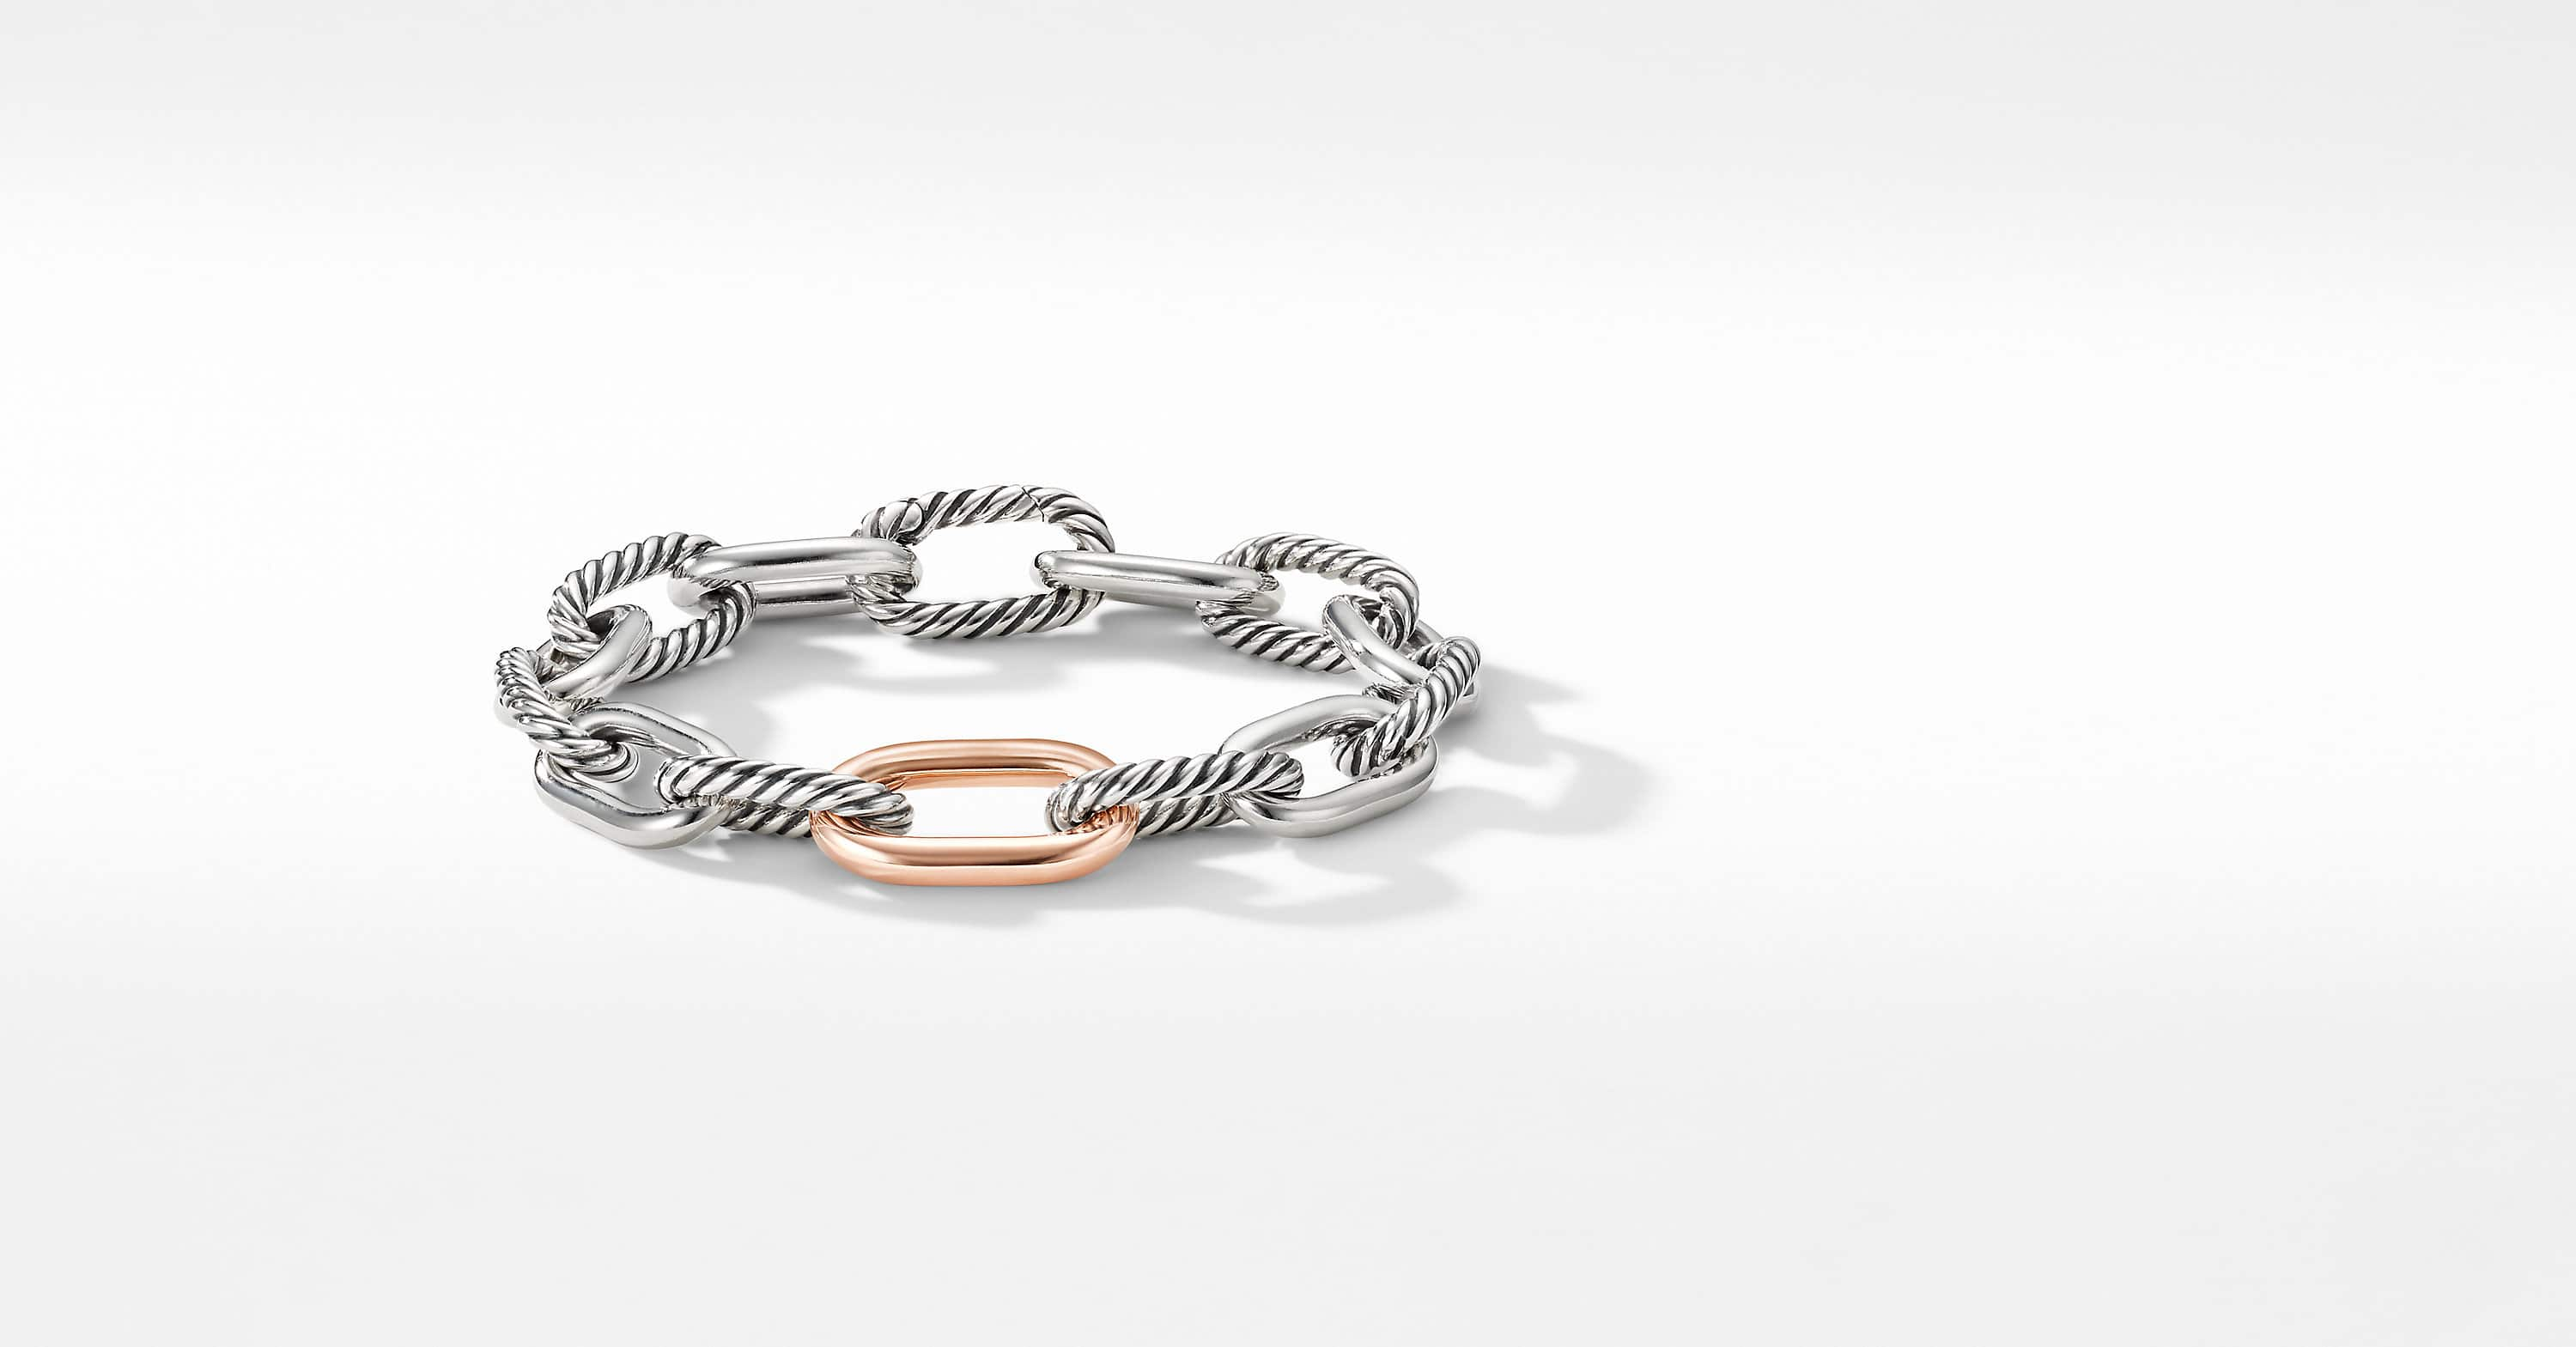 DY Madison Chain Medium Bracelet with 18K Rose Gold, 11mm